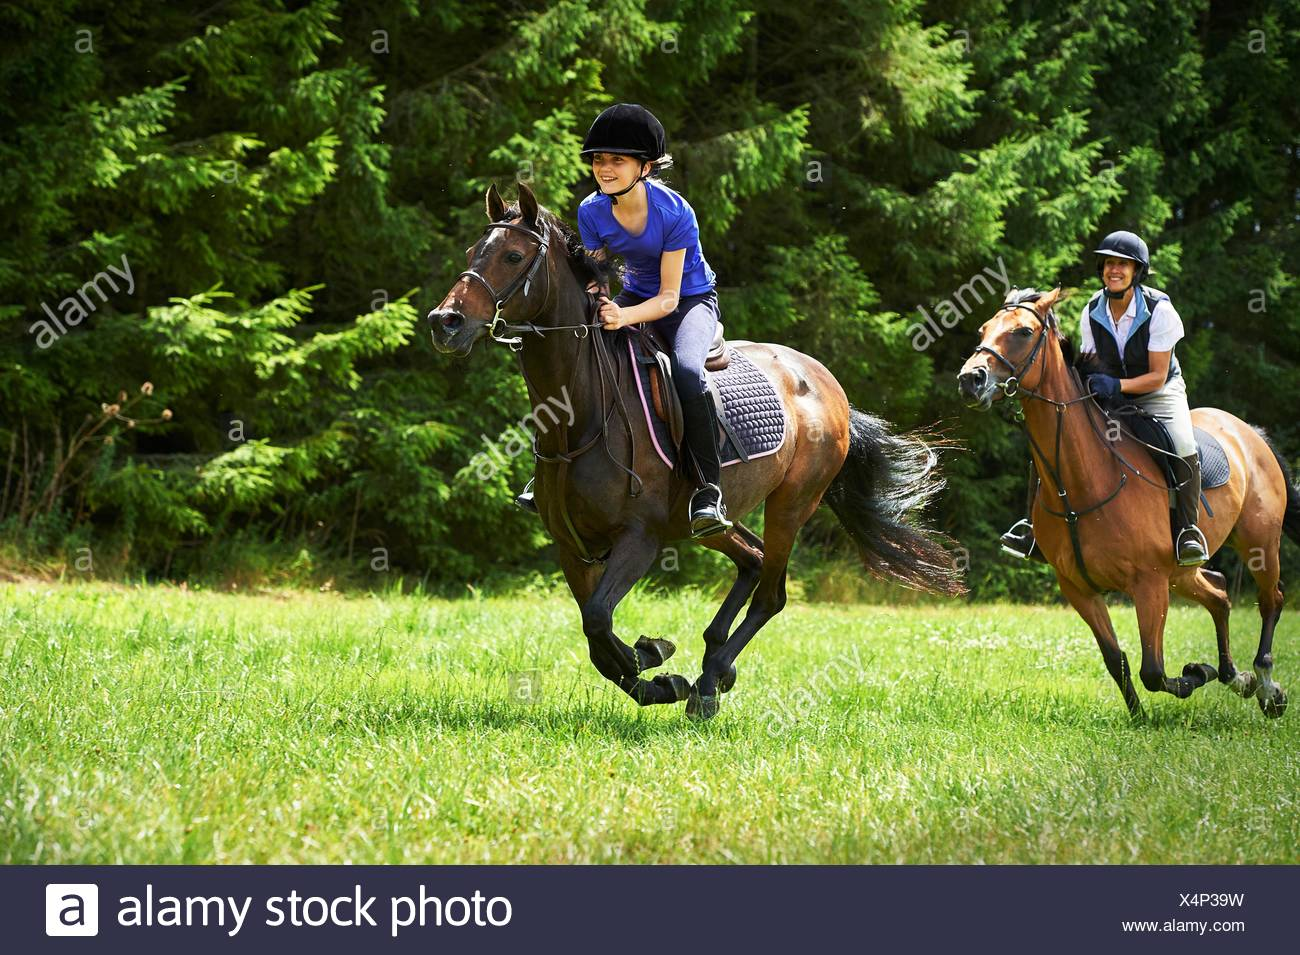 Mature woman and girl galloping on horse - Stock Image